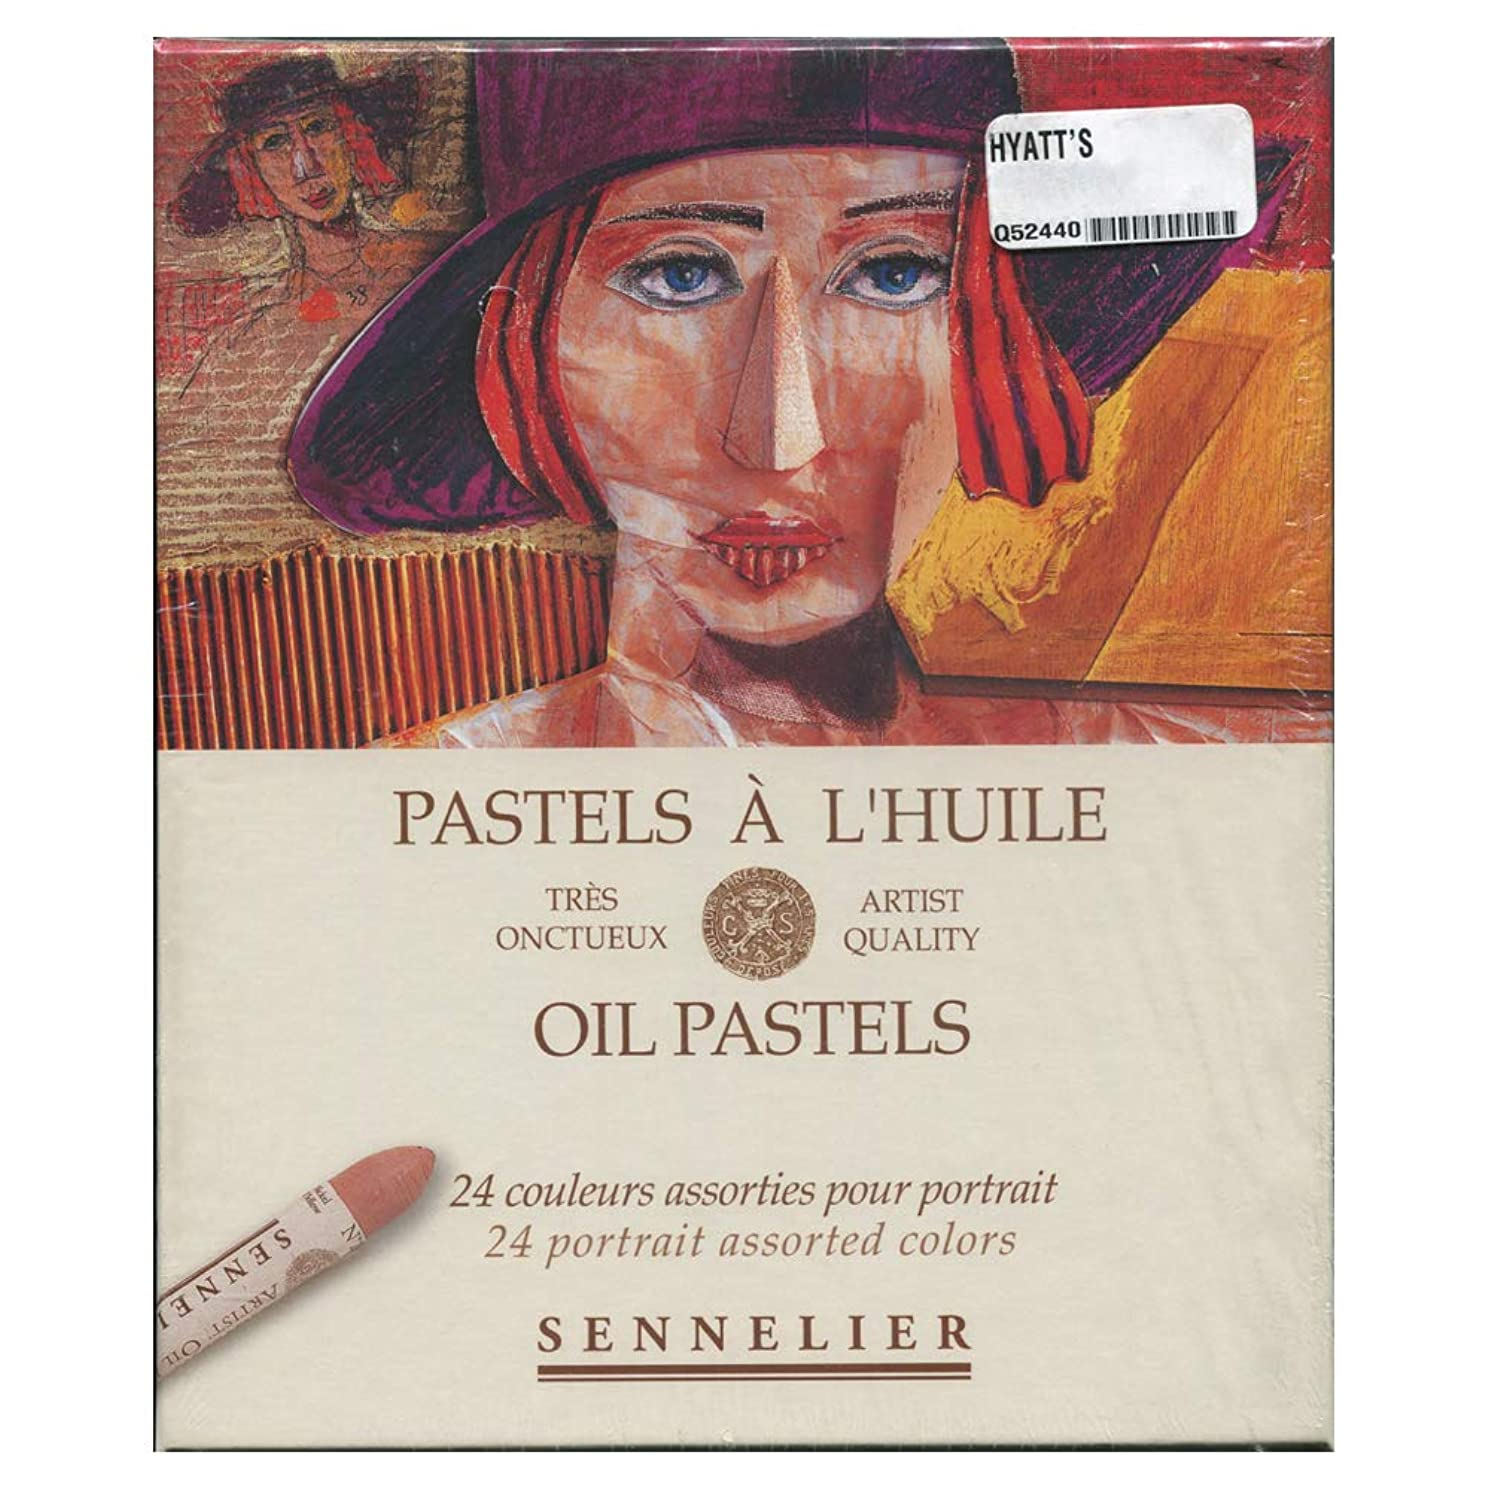 Sennelier Oil Pastel Portrait Set of 24